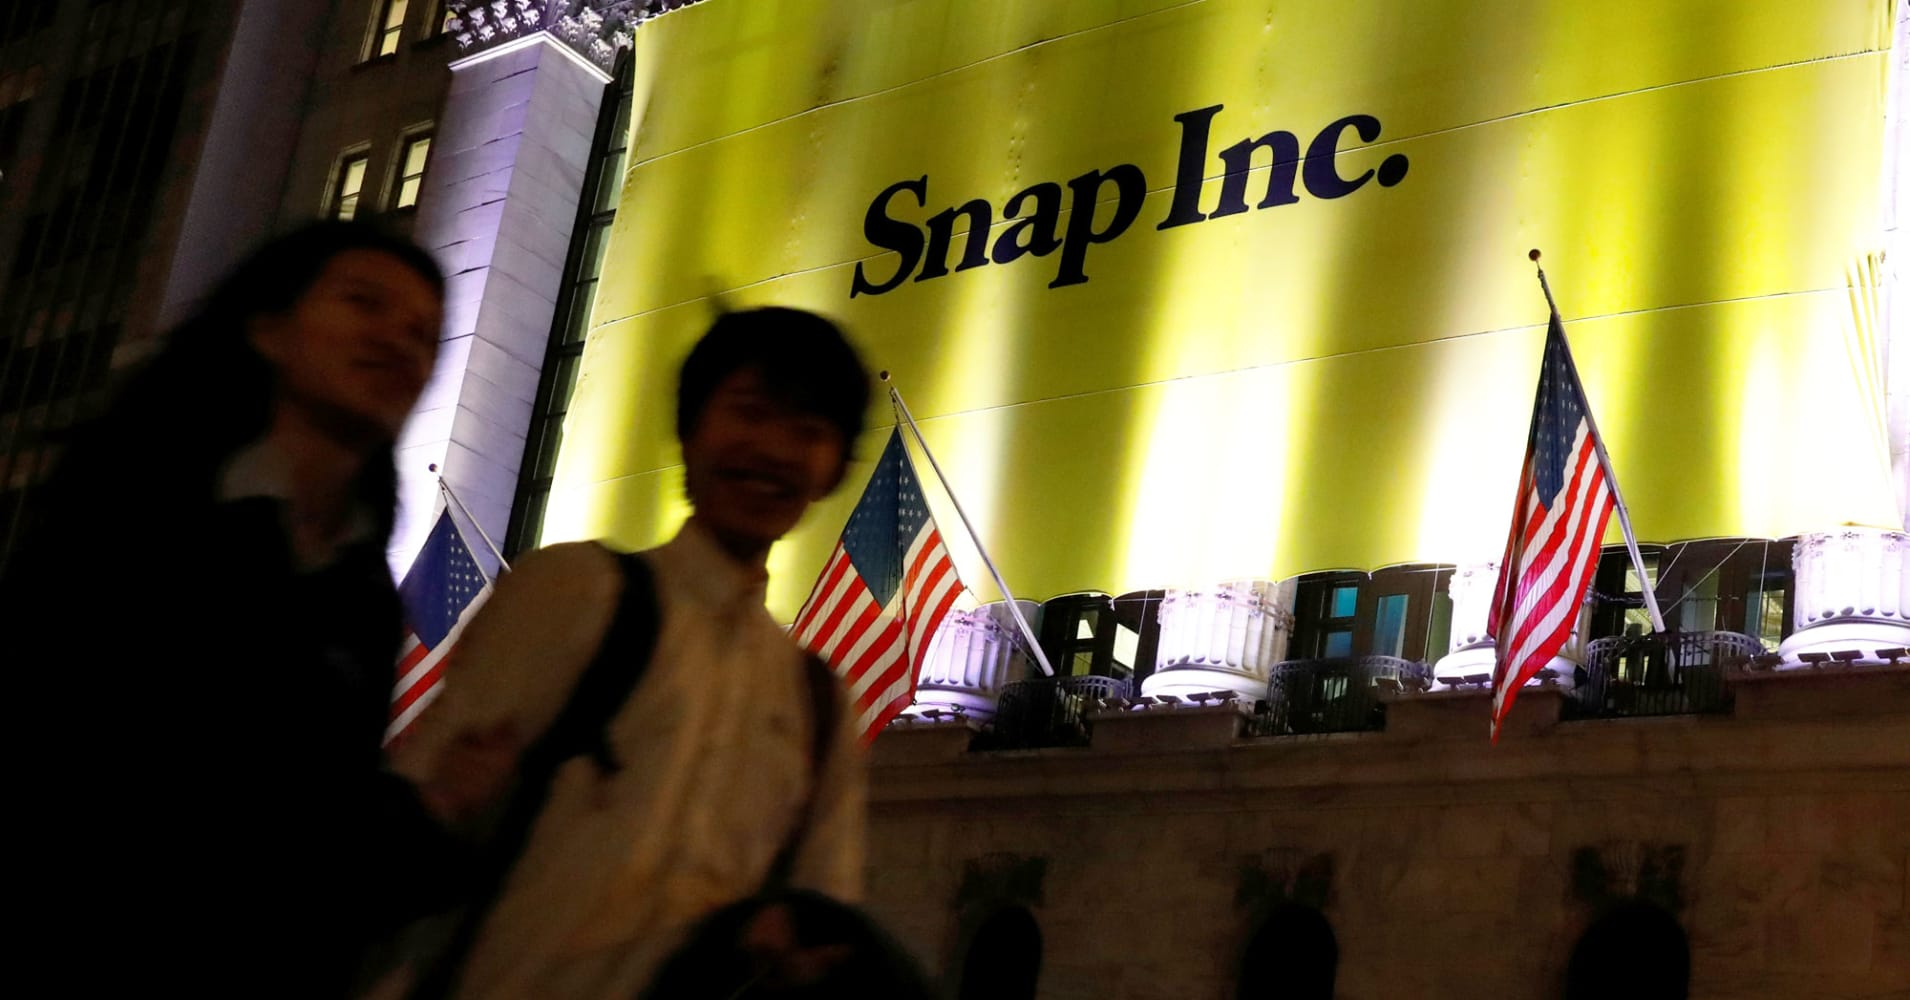 A banner for Snap Inc. hangs on the facade of the the New York Stock Exchange on the eve of the company's IPO in New York.